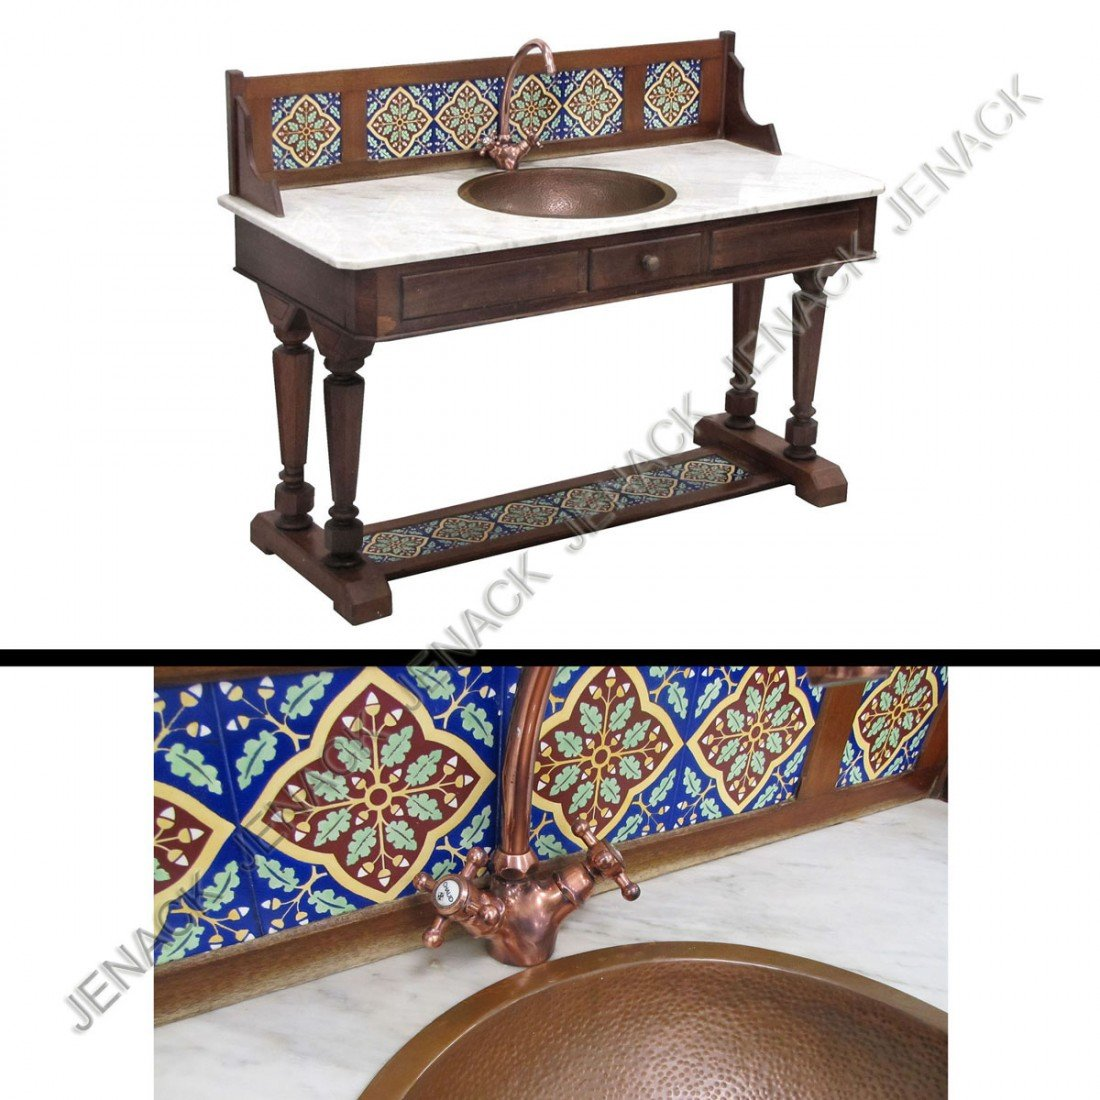 23: EDWARDIAN ARTS AND CRAFTS MARBLE TOP COPPER SINK